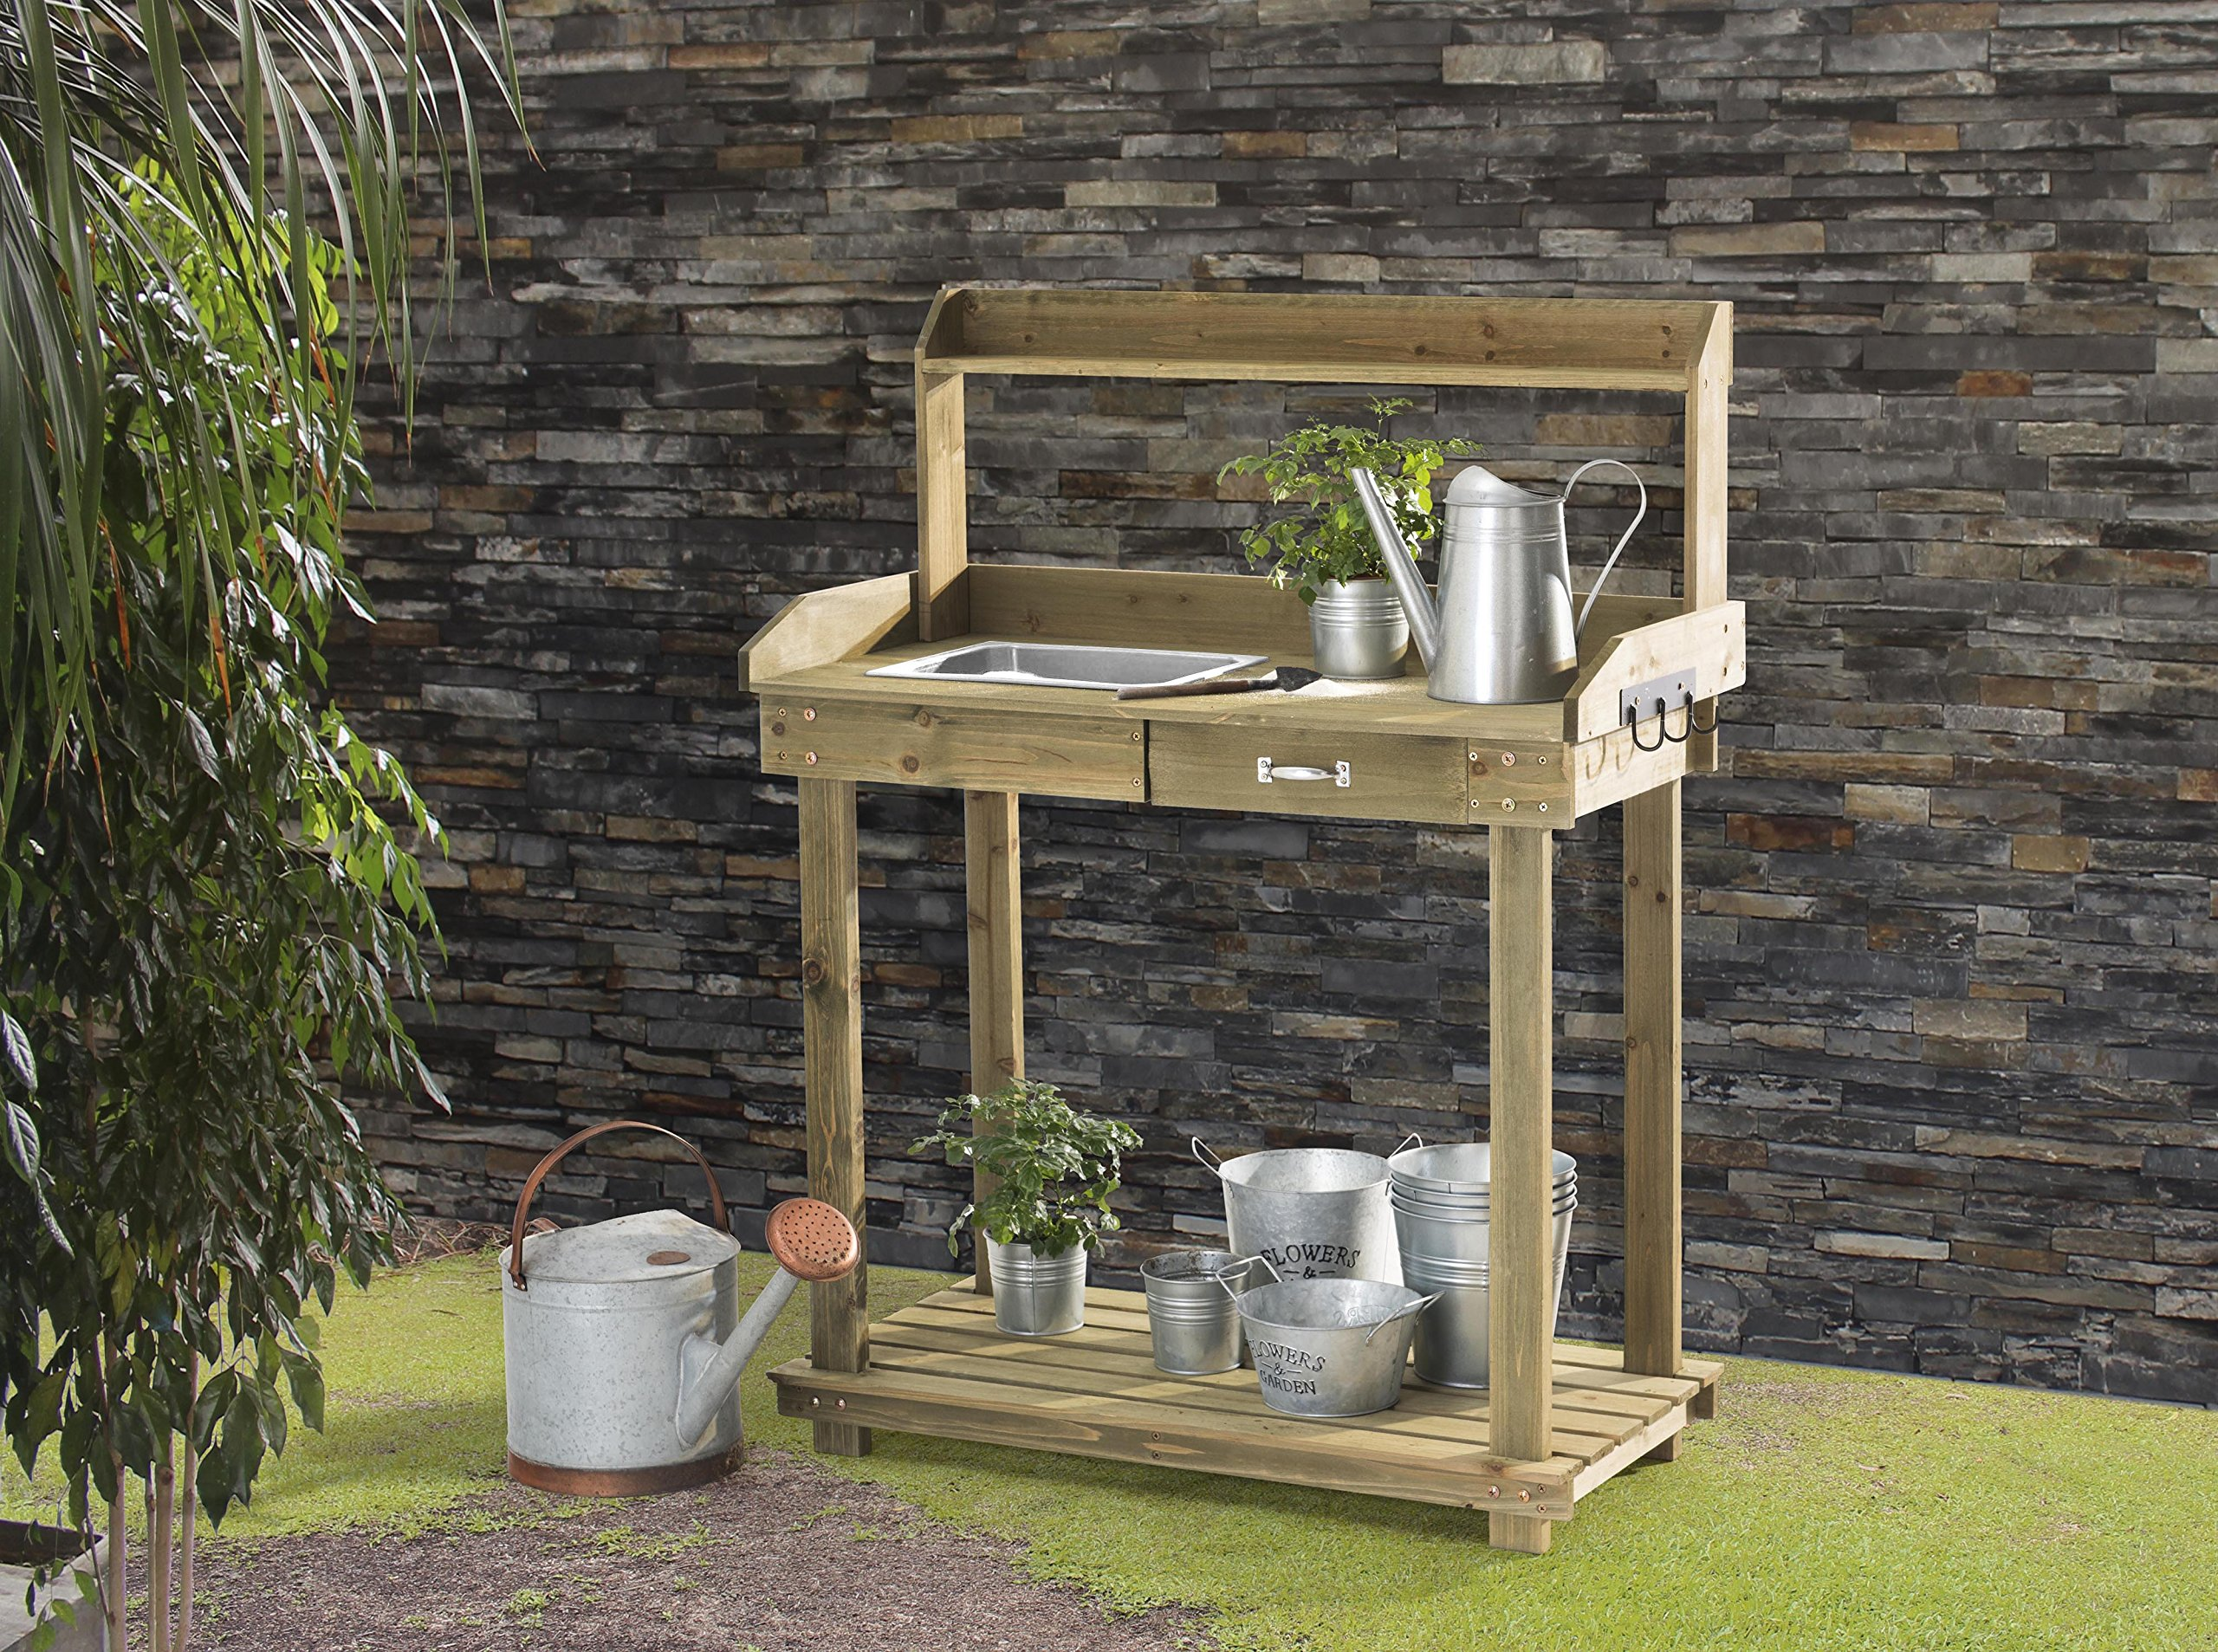 Sunjoy Church Wooden Potting Bench